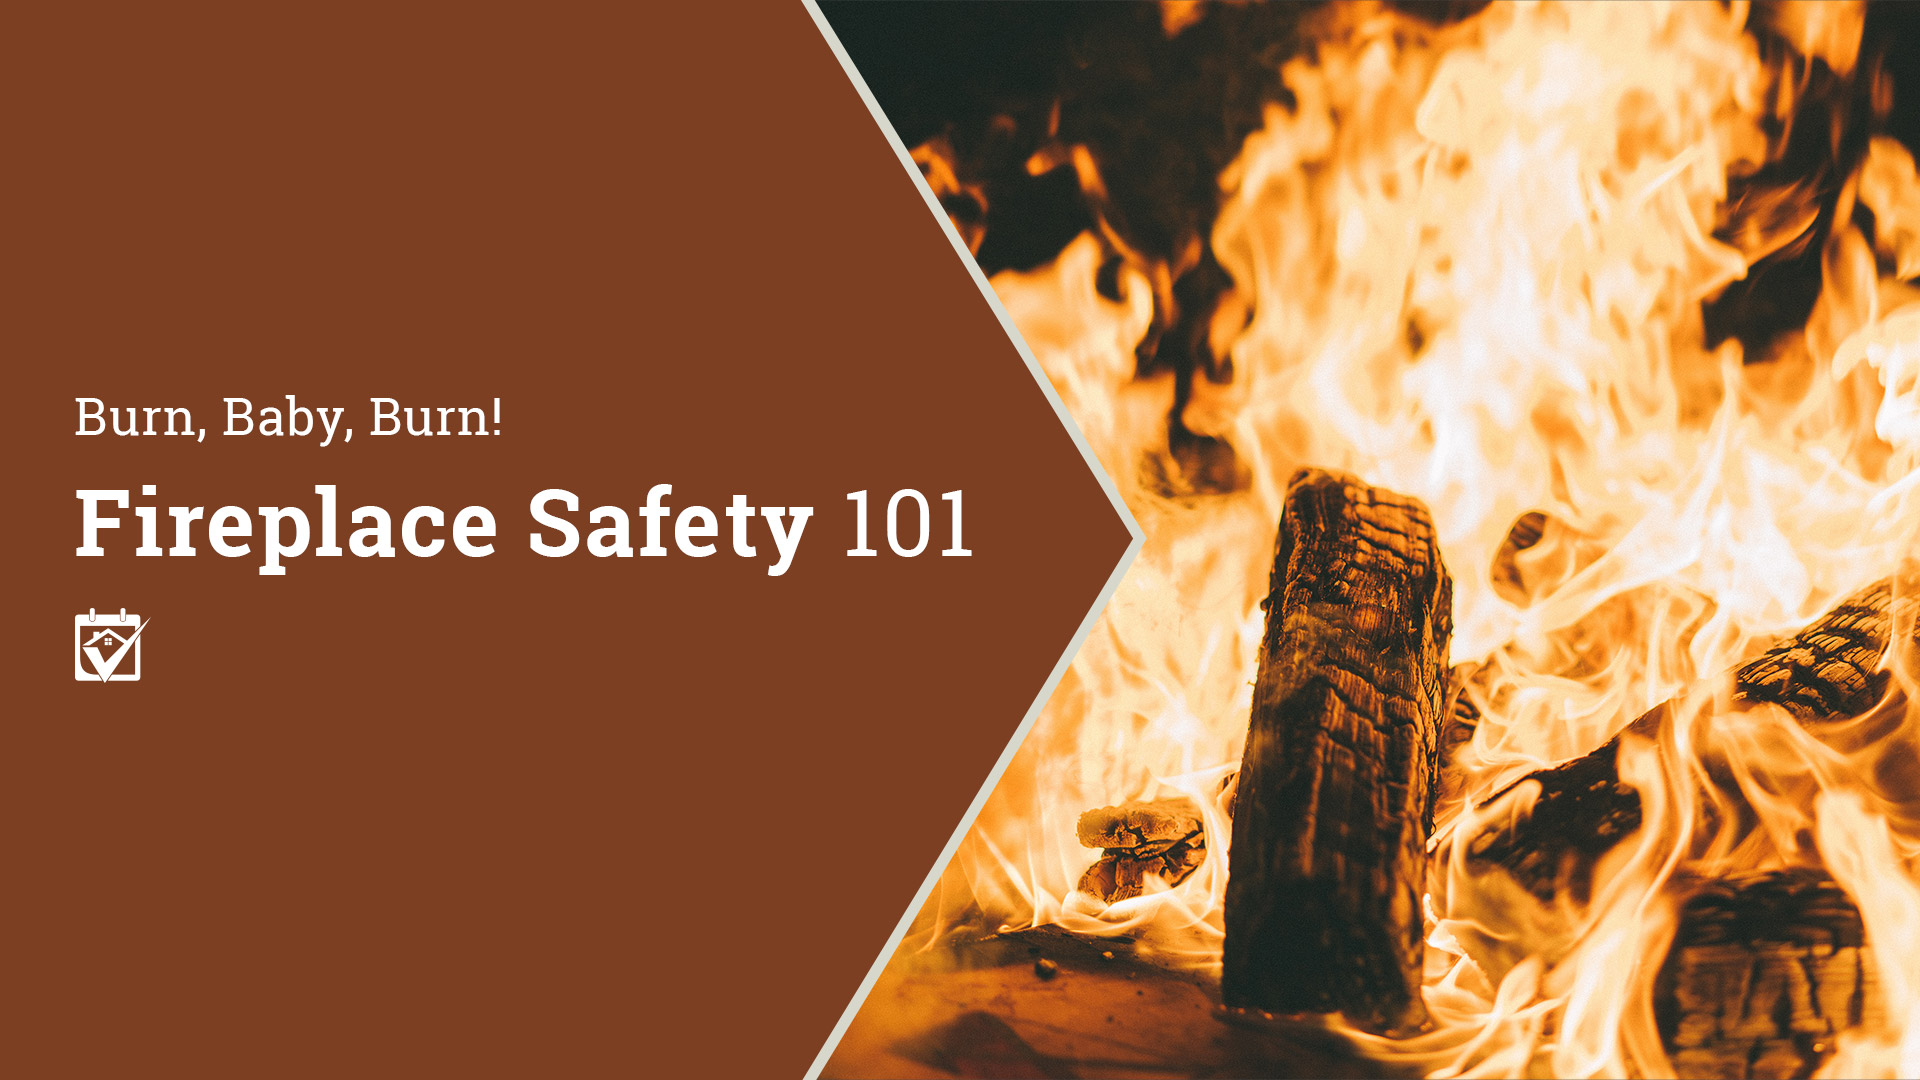 Burn, Baby, Burn! Fireplace Safety 101 - The Triverity Group